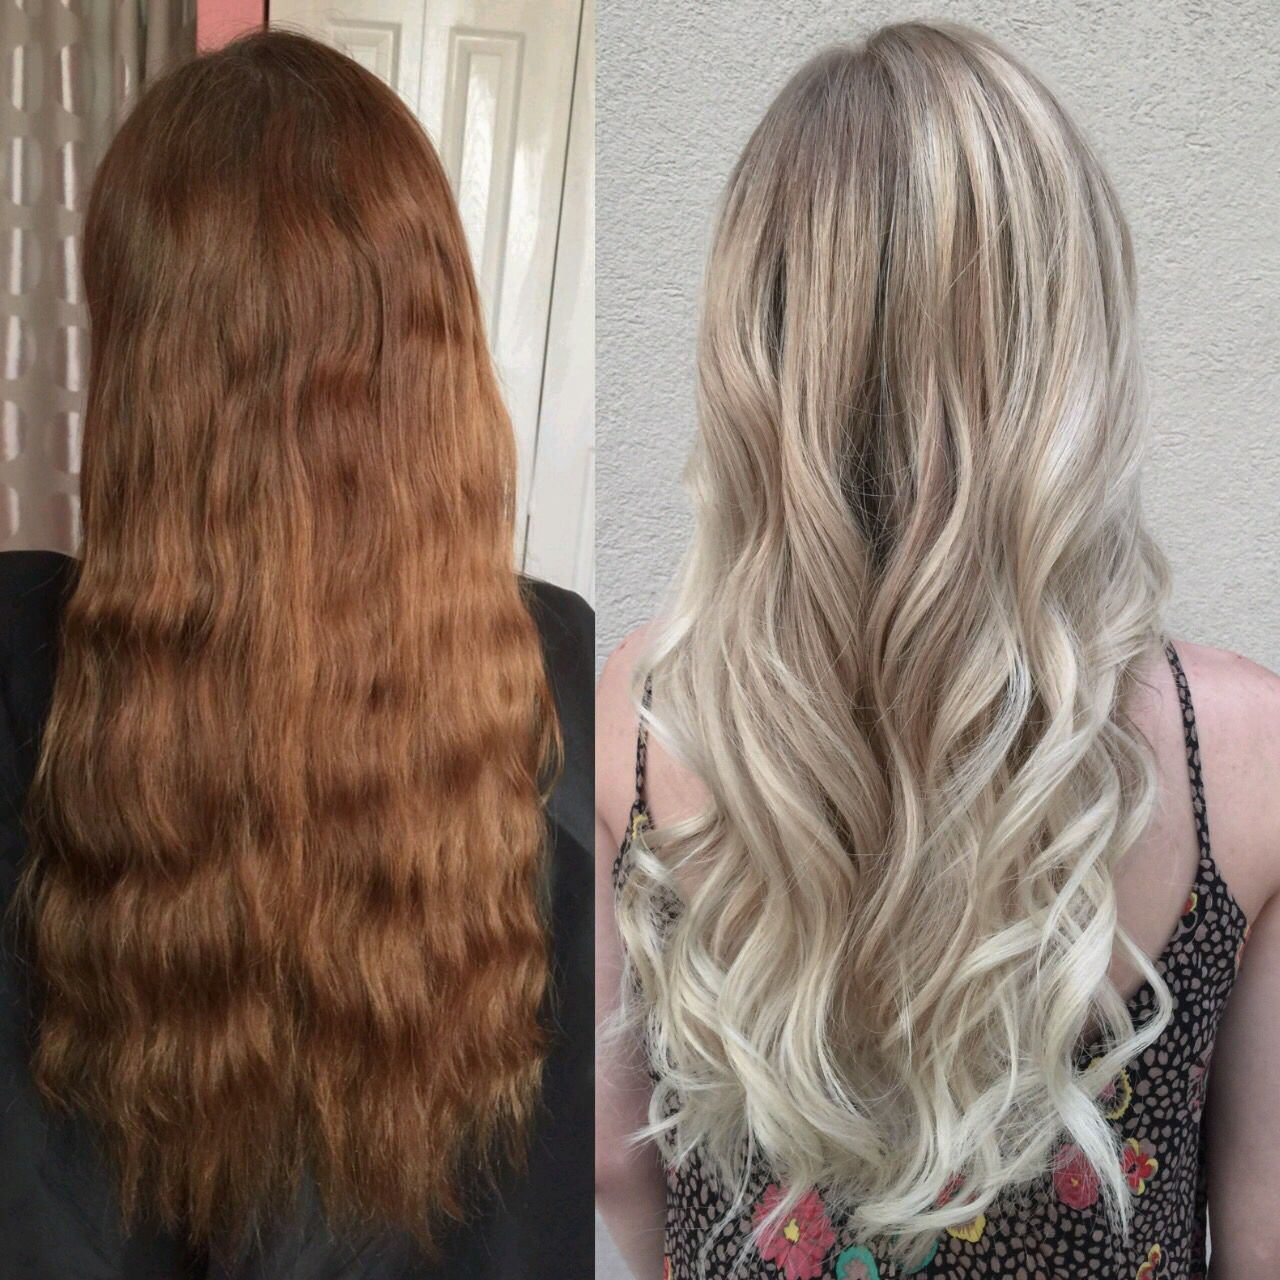 Hair Transformation From Box Dye Brown To Beautiful Blonde